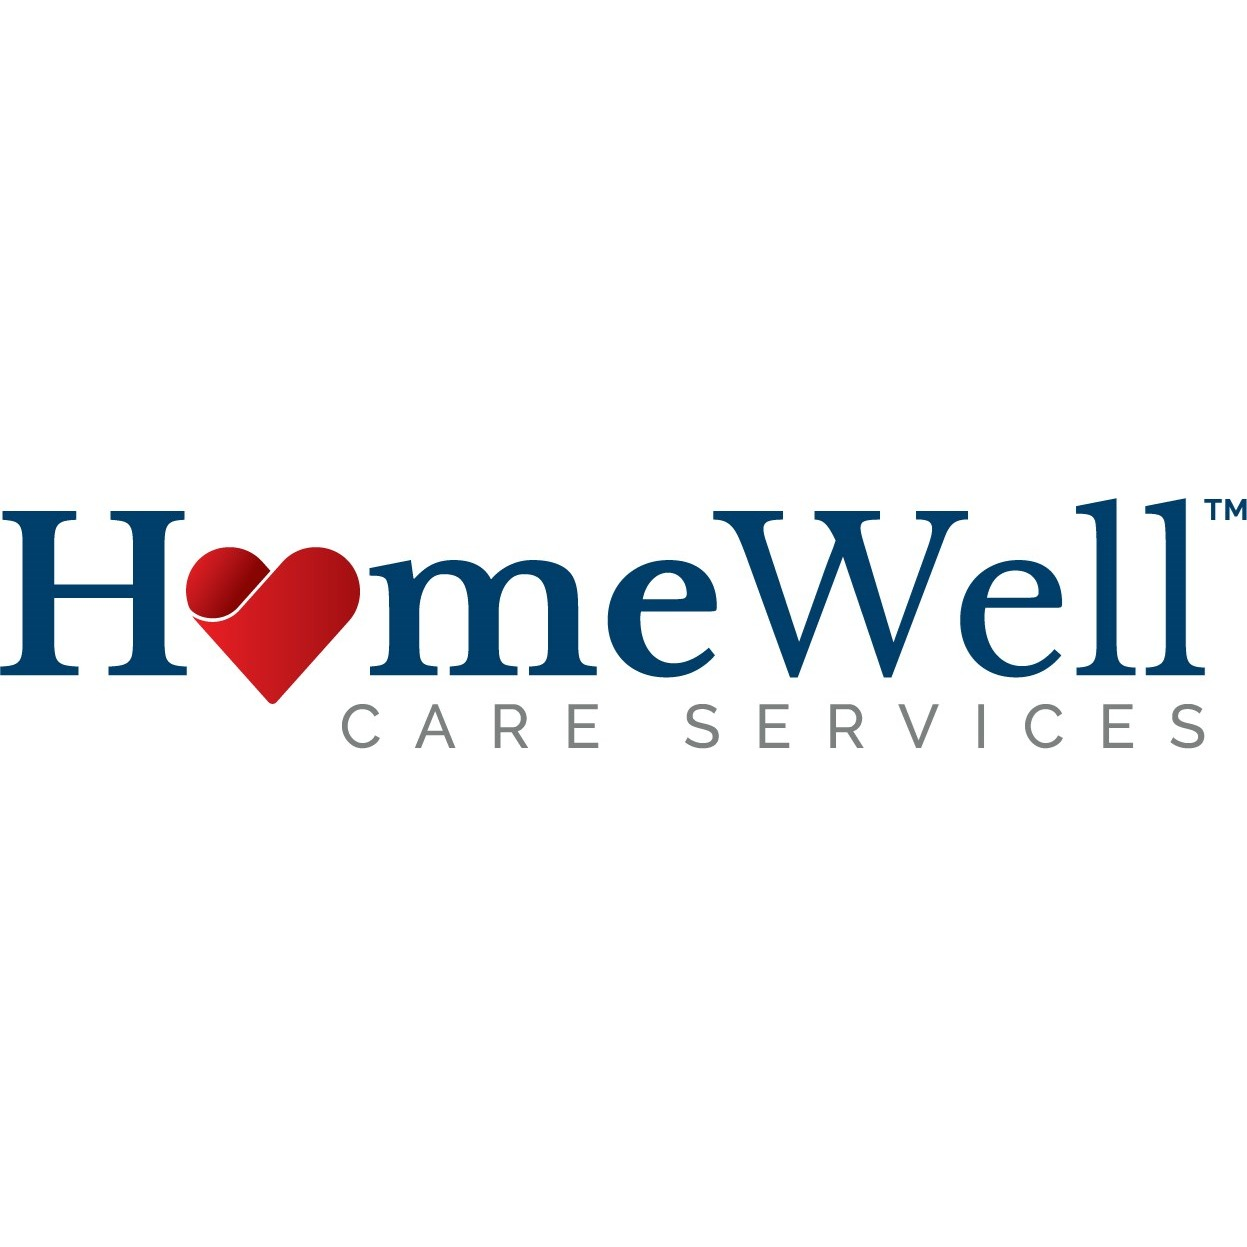 HomeWell Care Services | Financial Advisor in Loveland,Colorado